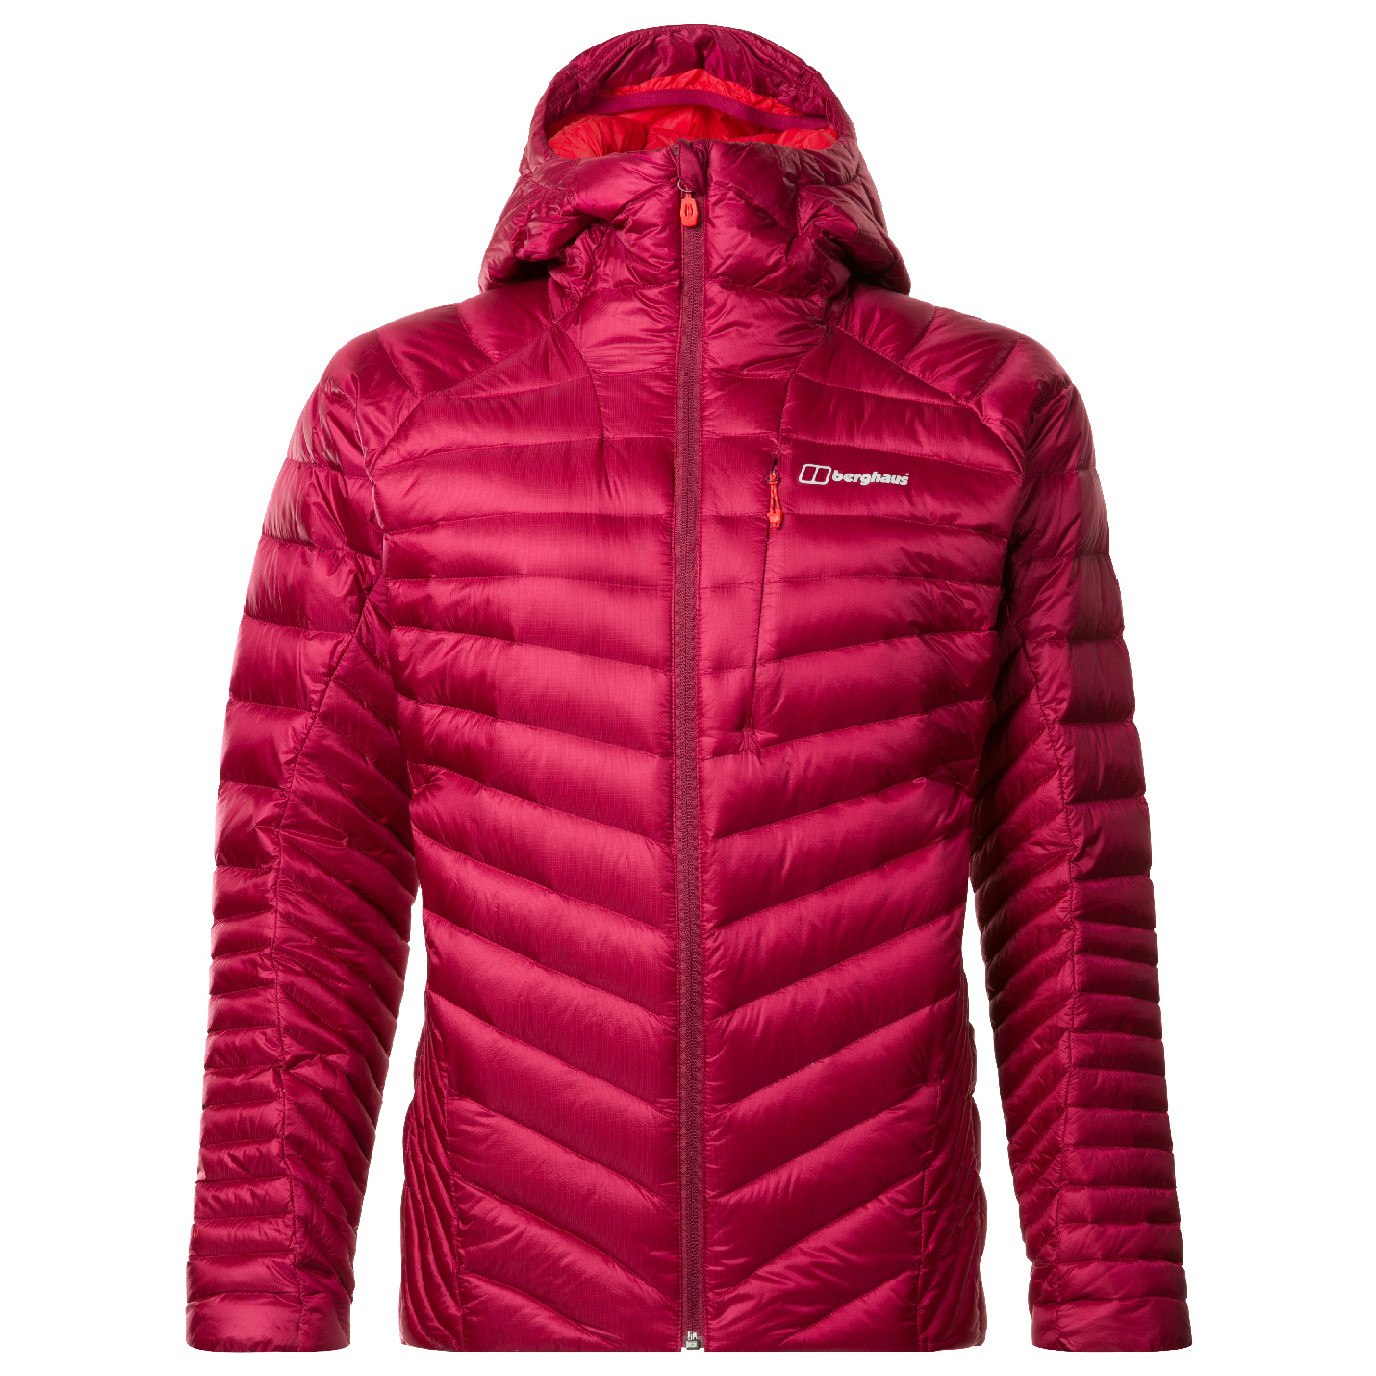 the best attitude c87bb 12090 Berghaus - Women's Extrem Micro 2.0 Down Jacket - Giacca in piumino - Beet  Red | 8 (UK)